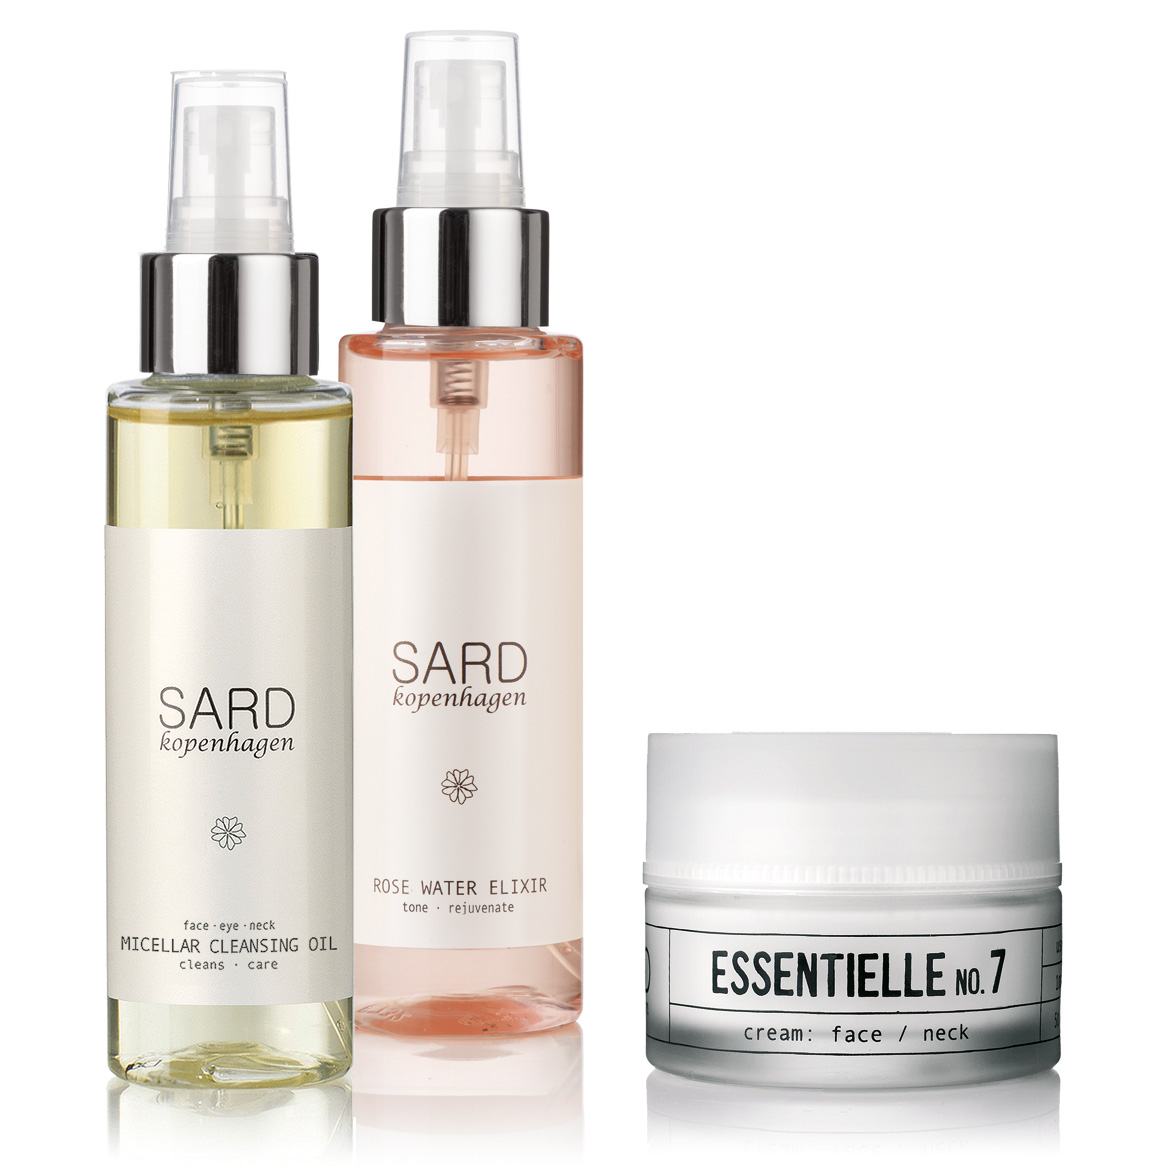 sard kopenhagen oil & essential cream